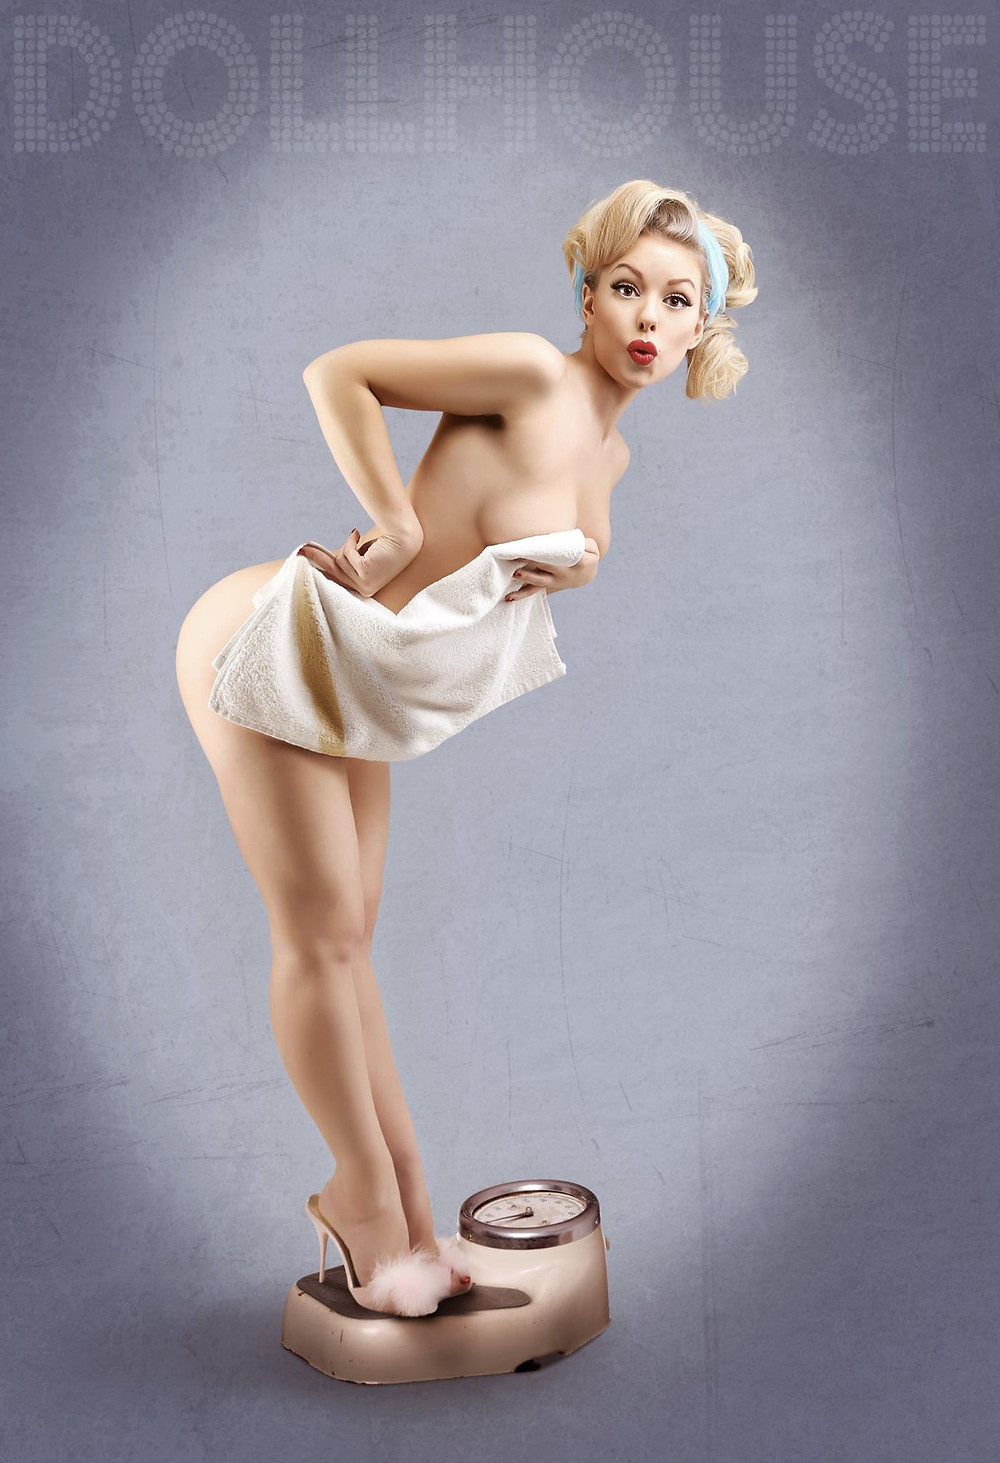 Heather Valentine Model and Pinup by DollHouse Photography